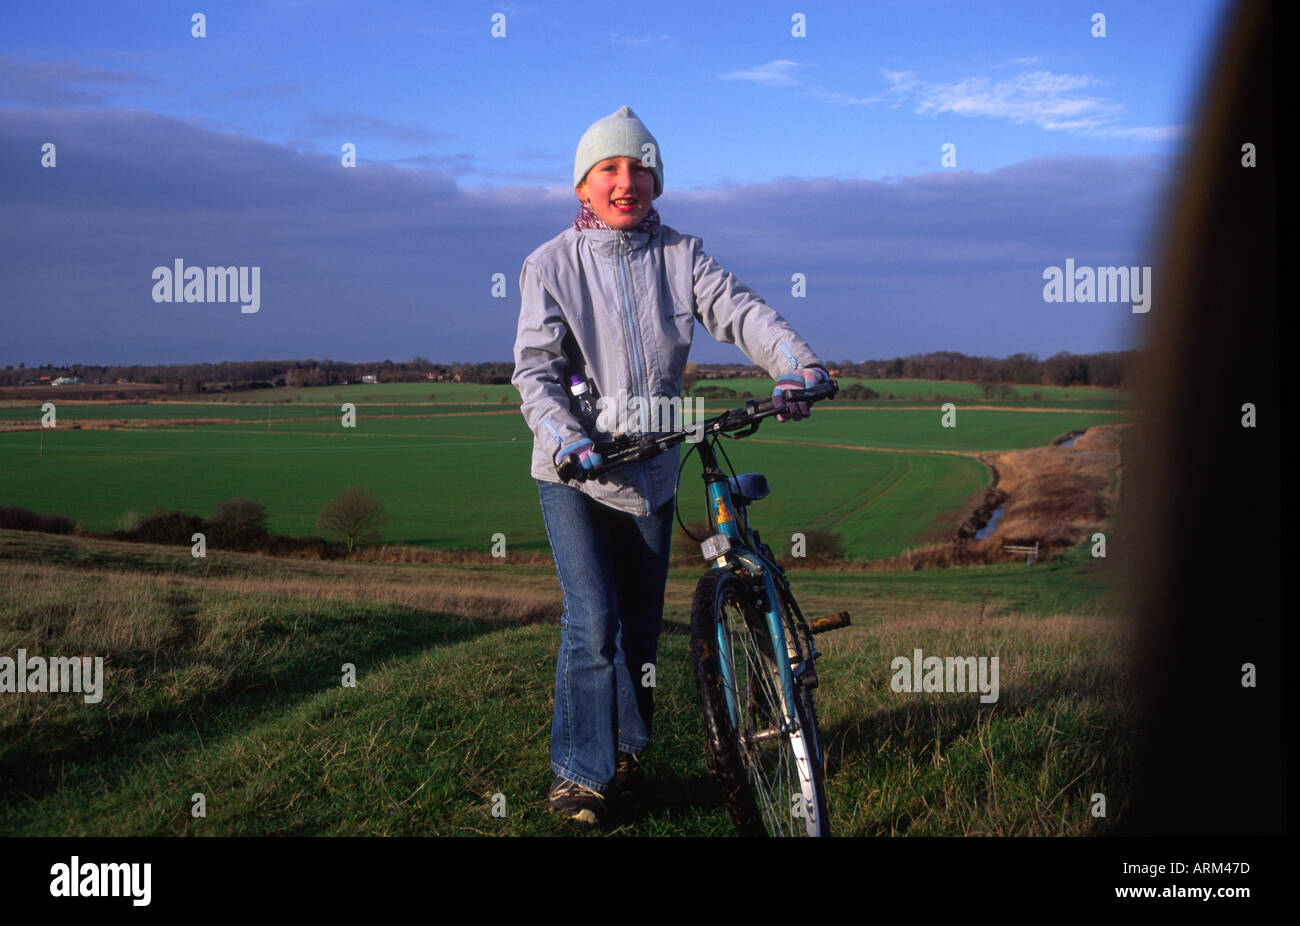 Child on country bike ride Burrow Hill Butley Suffolk England - Stock Image